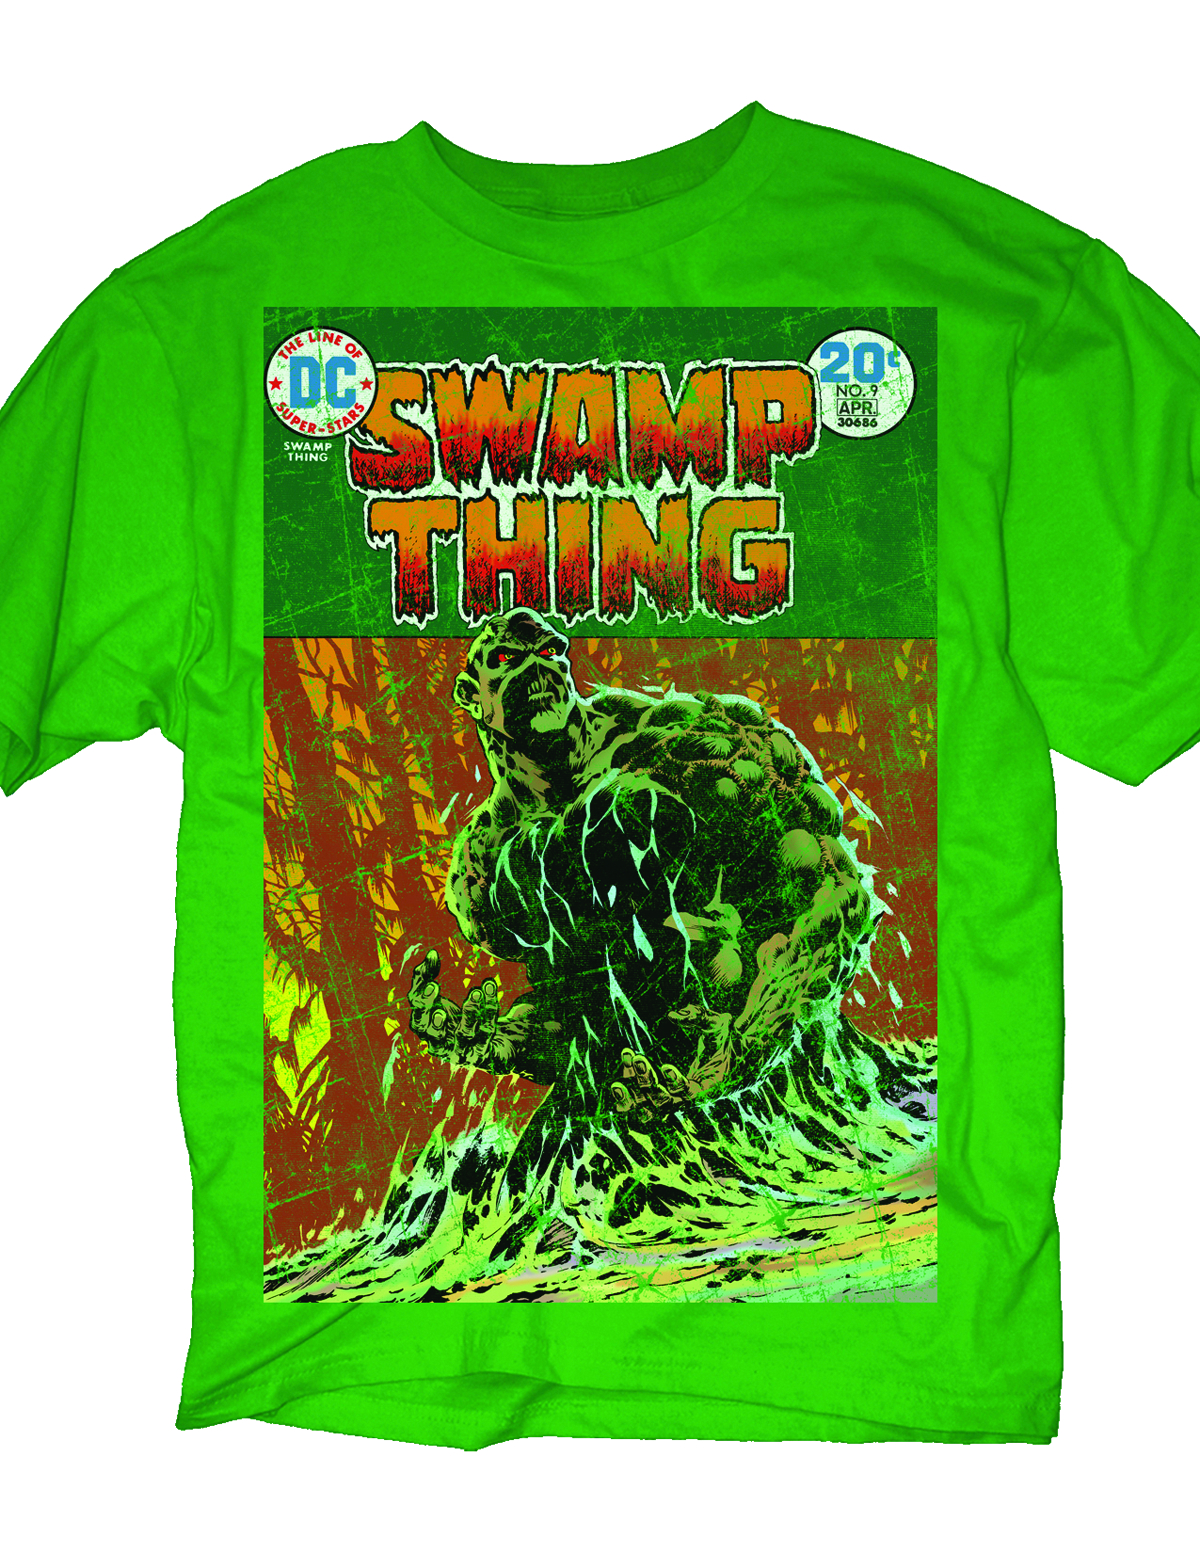 DC HEROES SWAMP THING COVER PX GREEN T/S LG